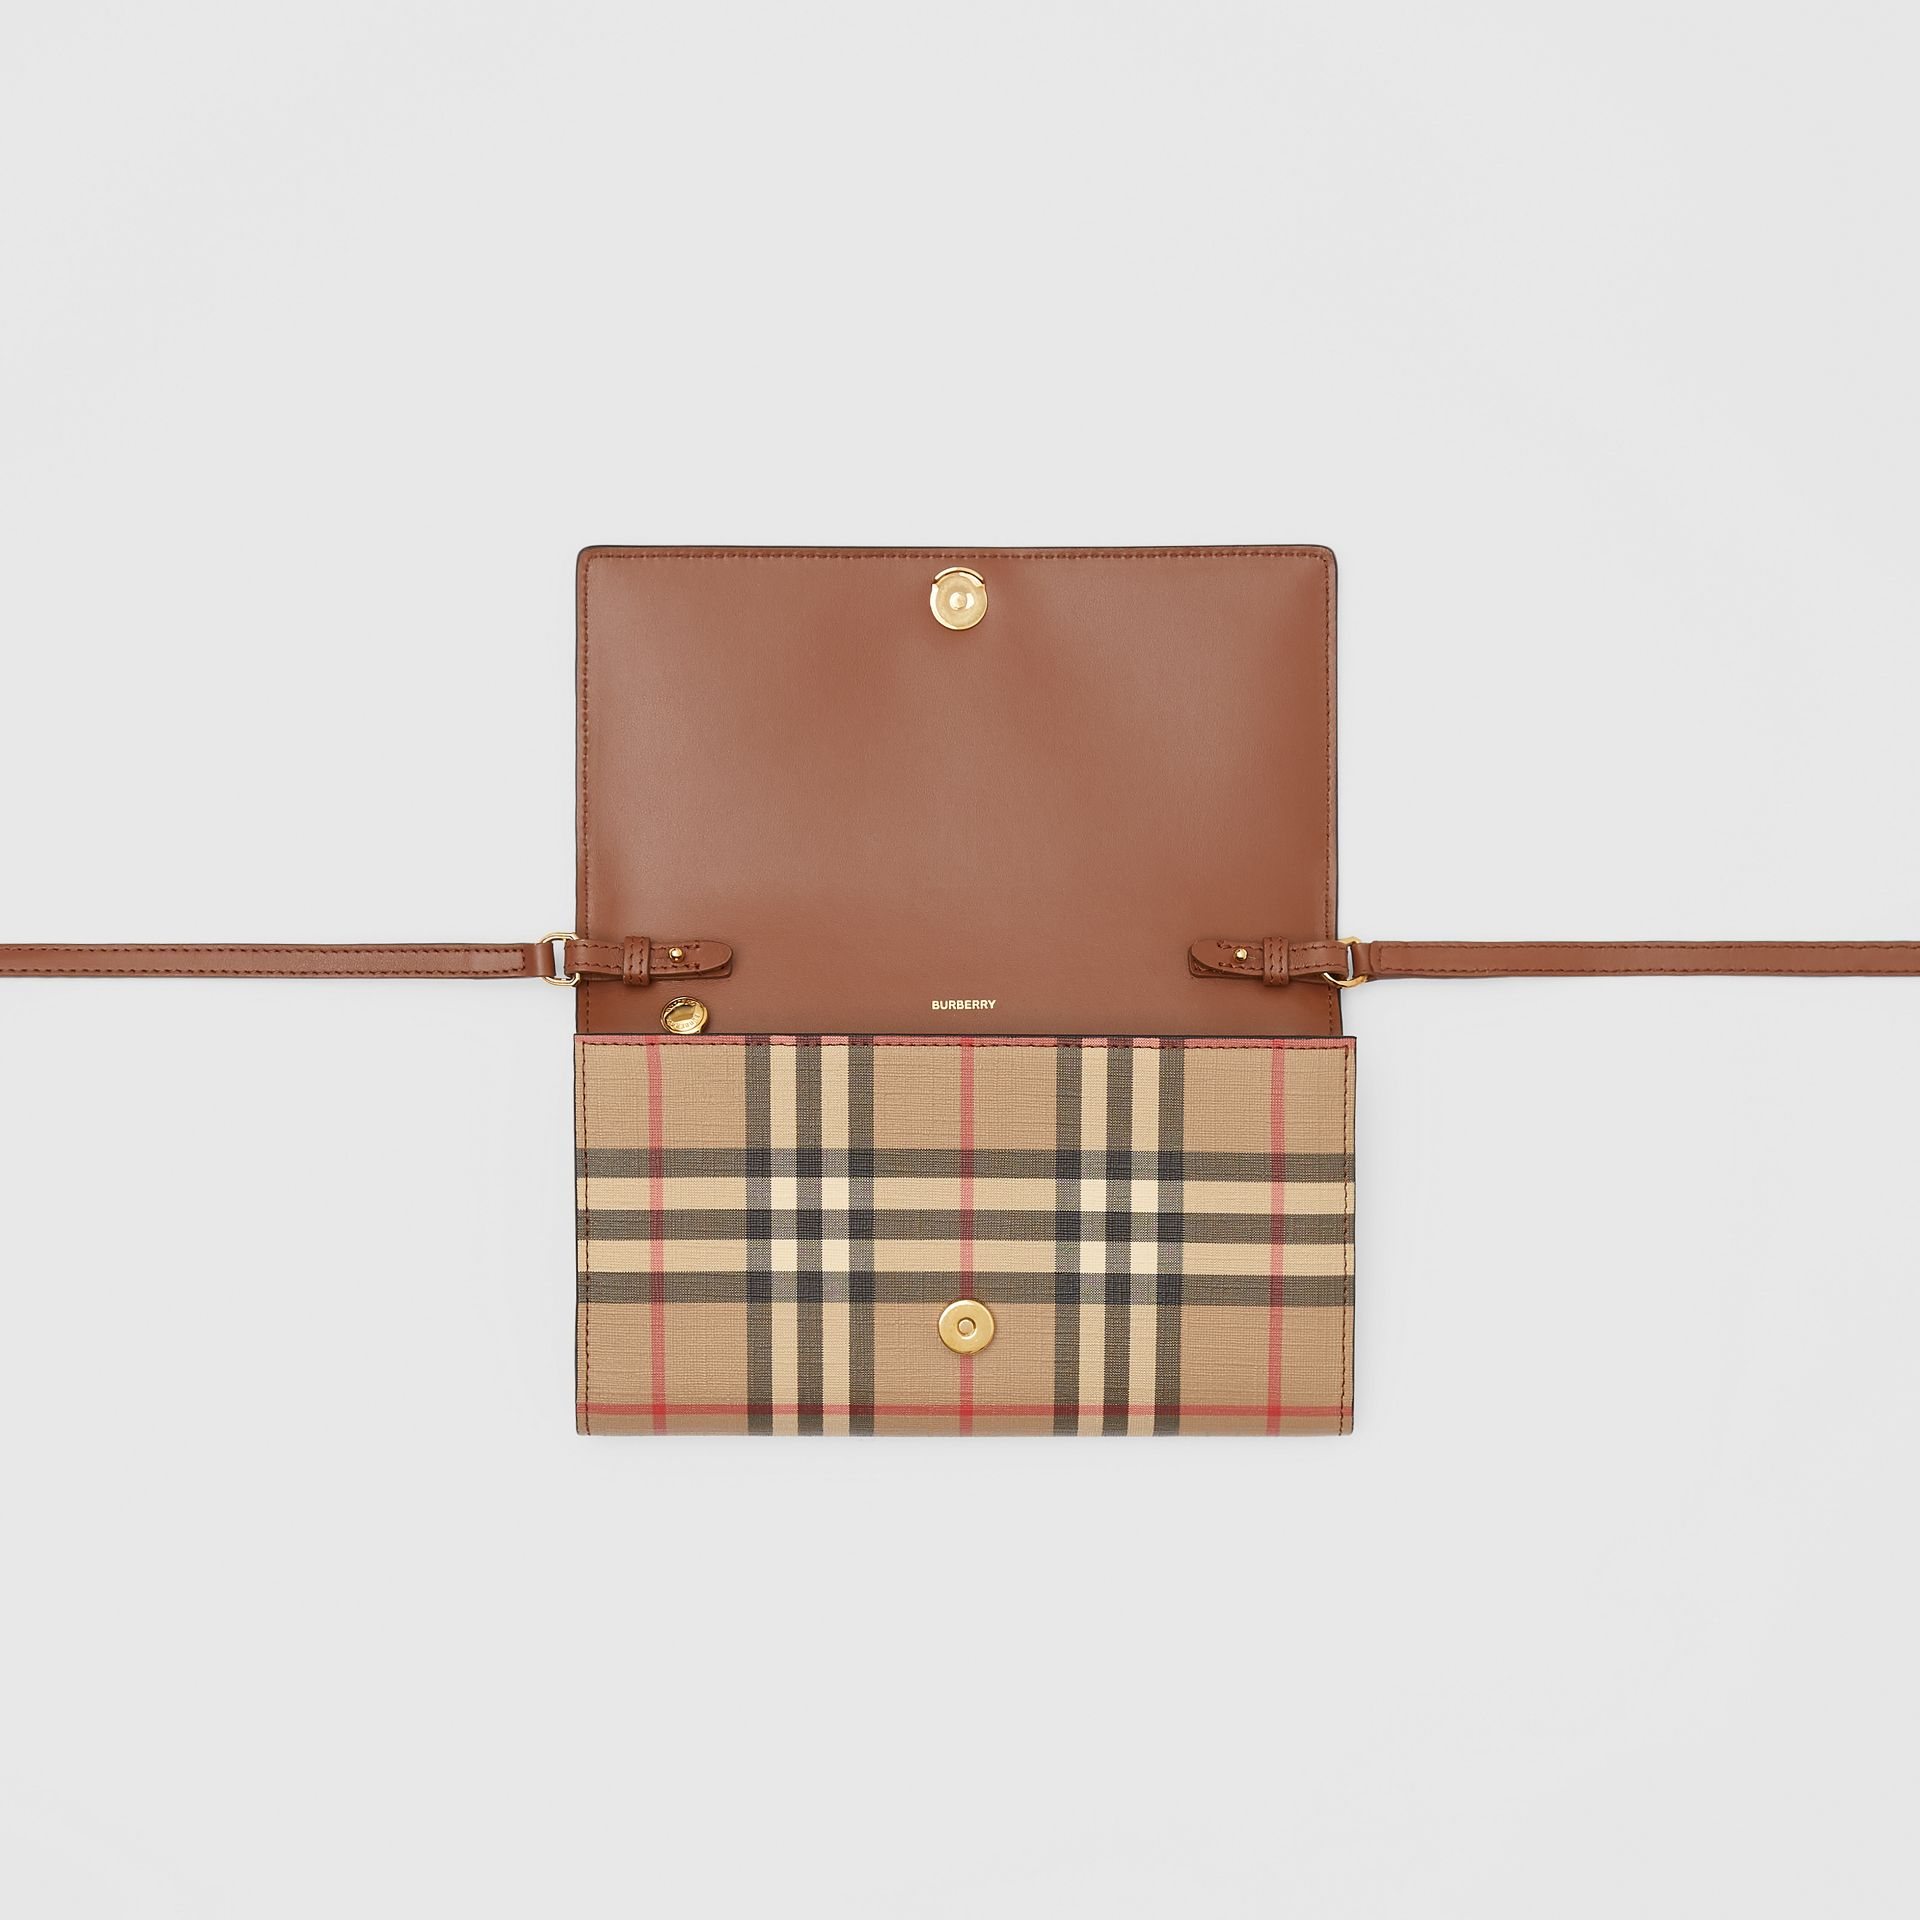 Vintage Check E-canvas Wallet with Detachable Strap in Malt Brown - Women | Burberry United Kingdom - gallery image 8